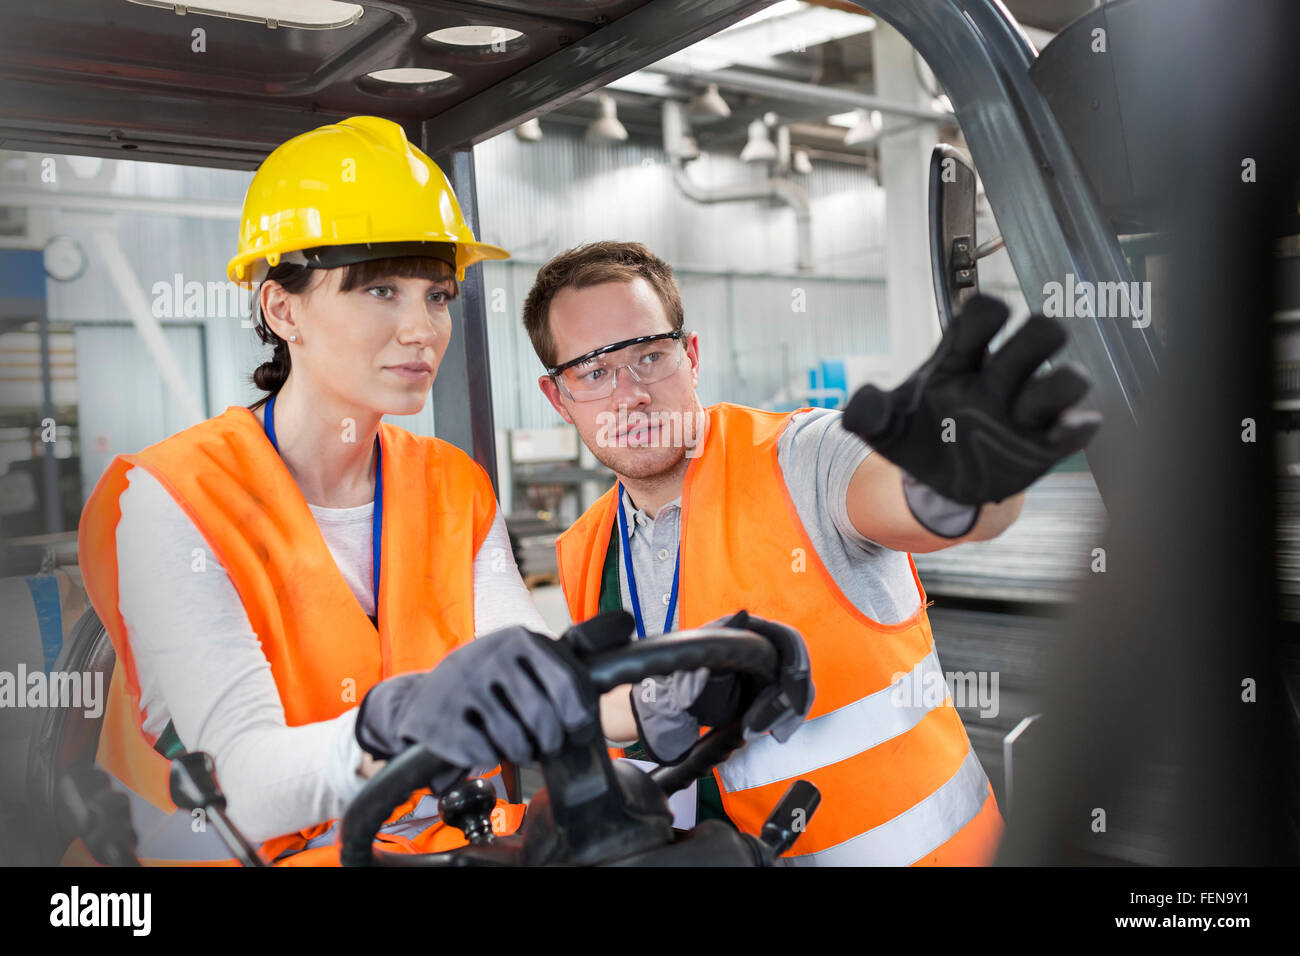 Worker guiding coworker driving forklift in factory Stock Photo